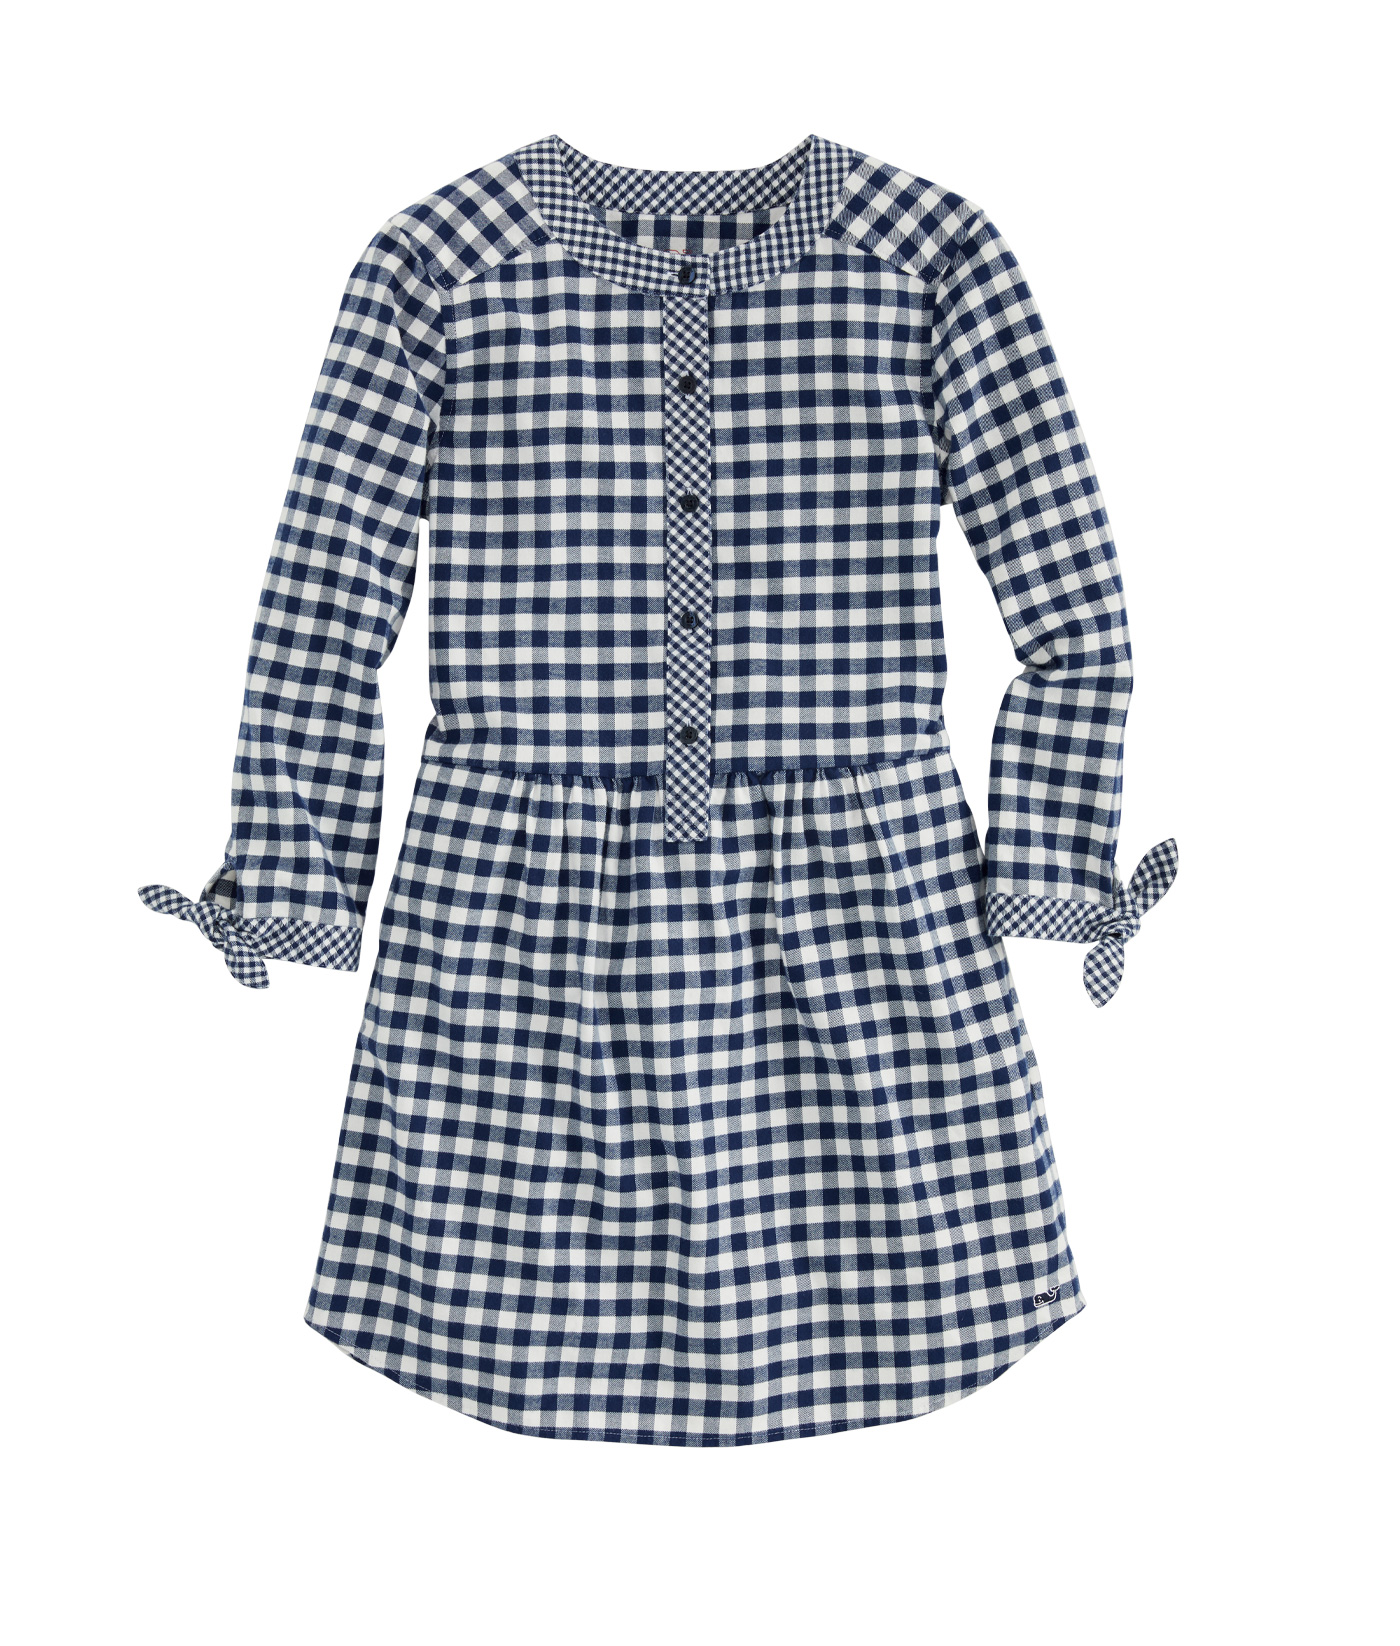 Girls Mixed Gingham Flannel Shirt Dress